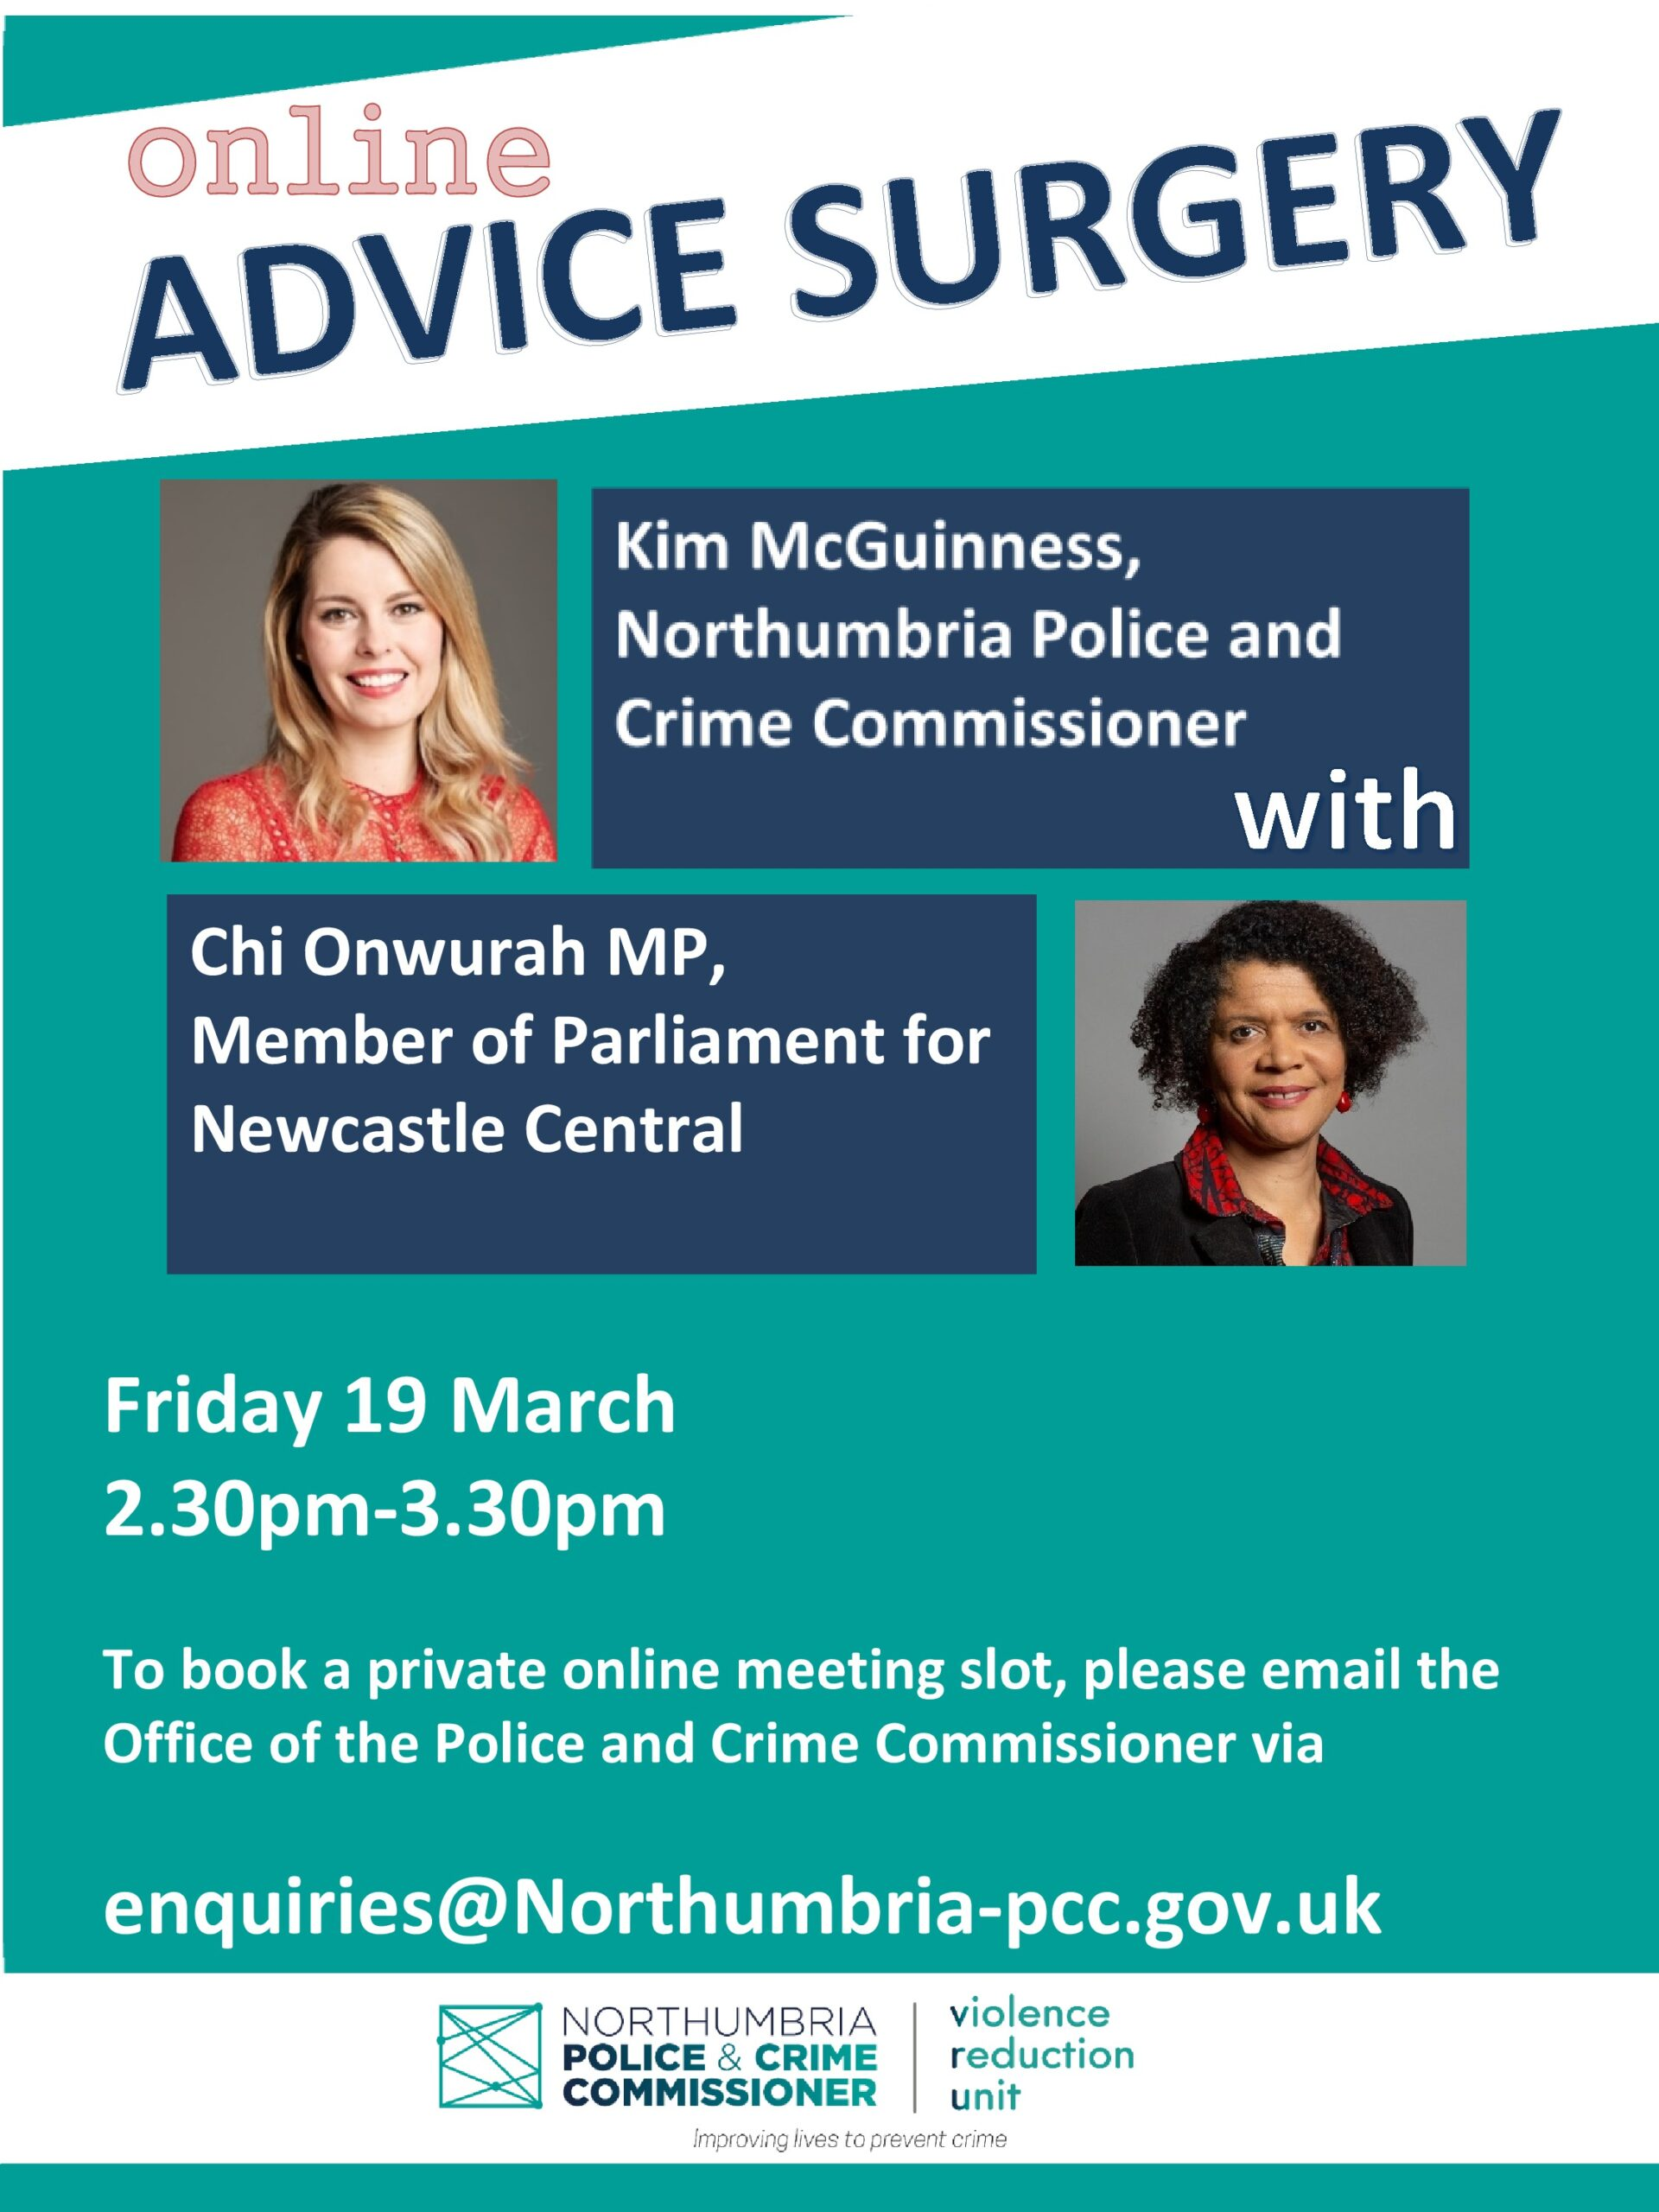 Special online surgery with the Police &Crime Commissioner for Northumbria